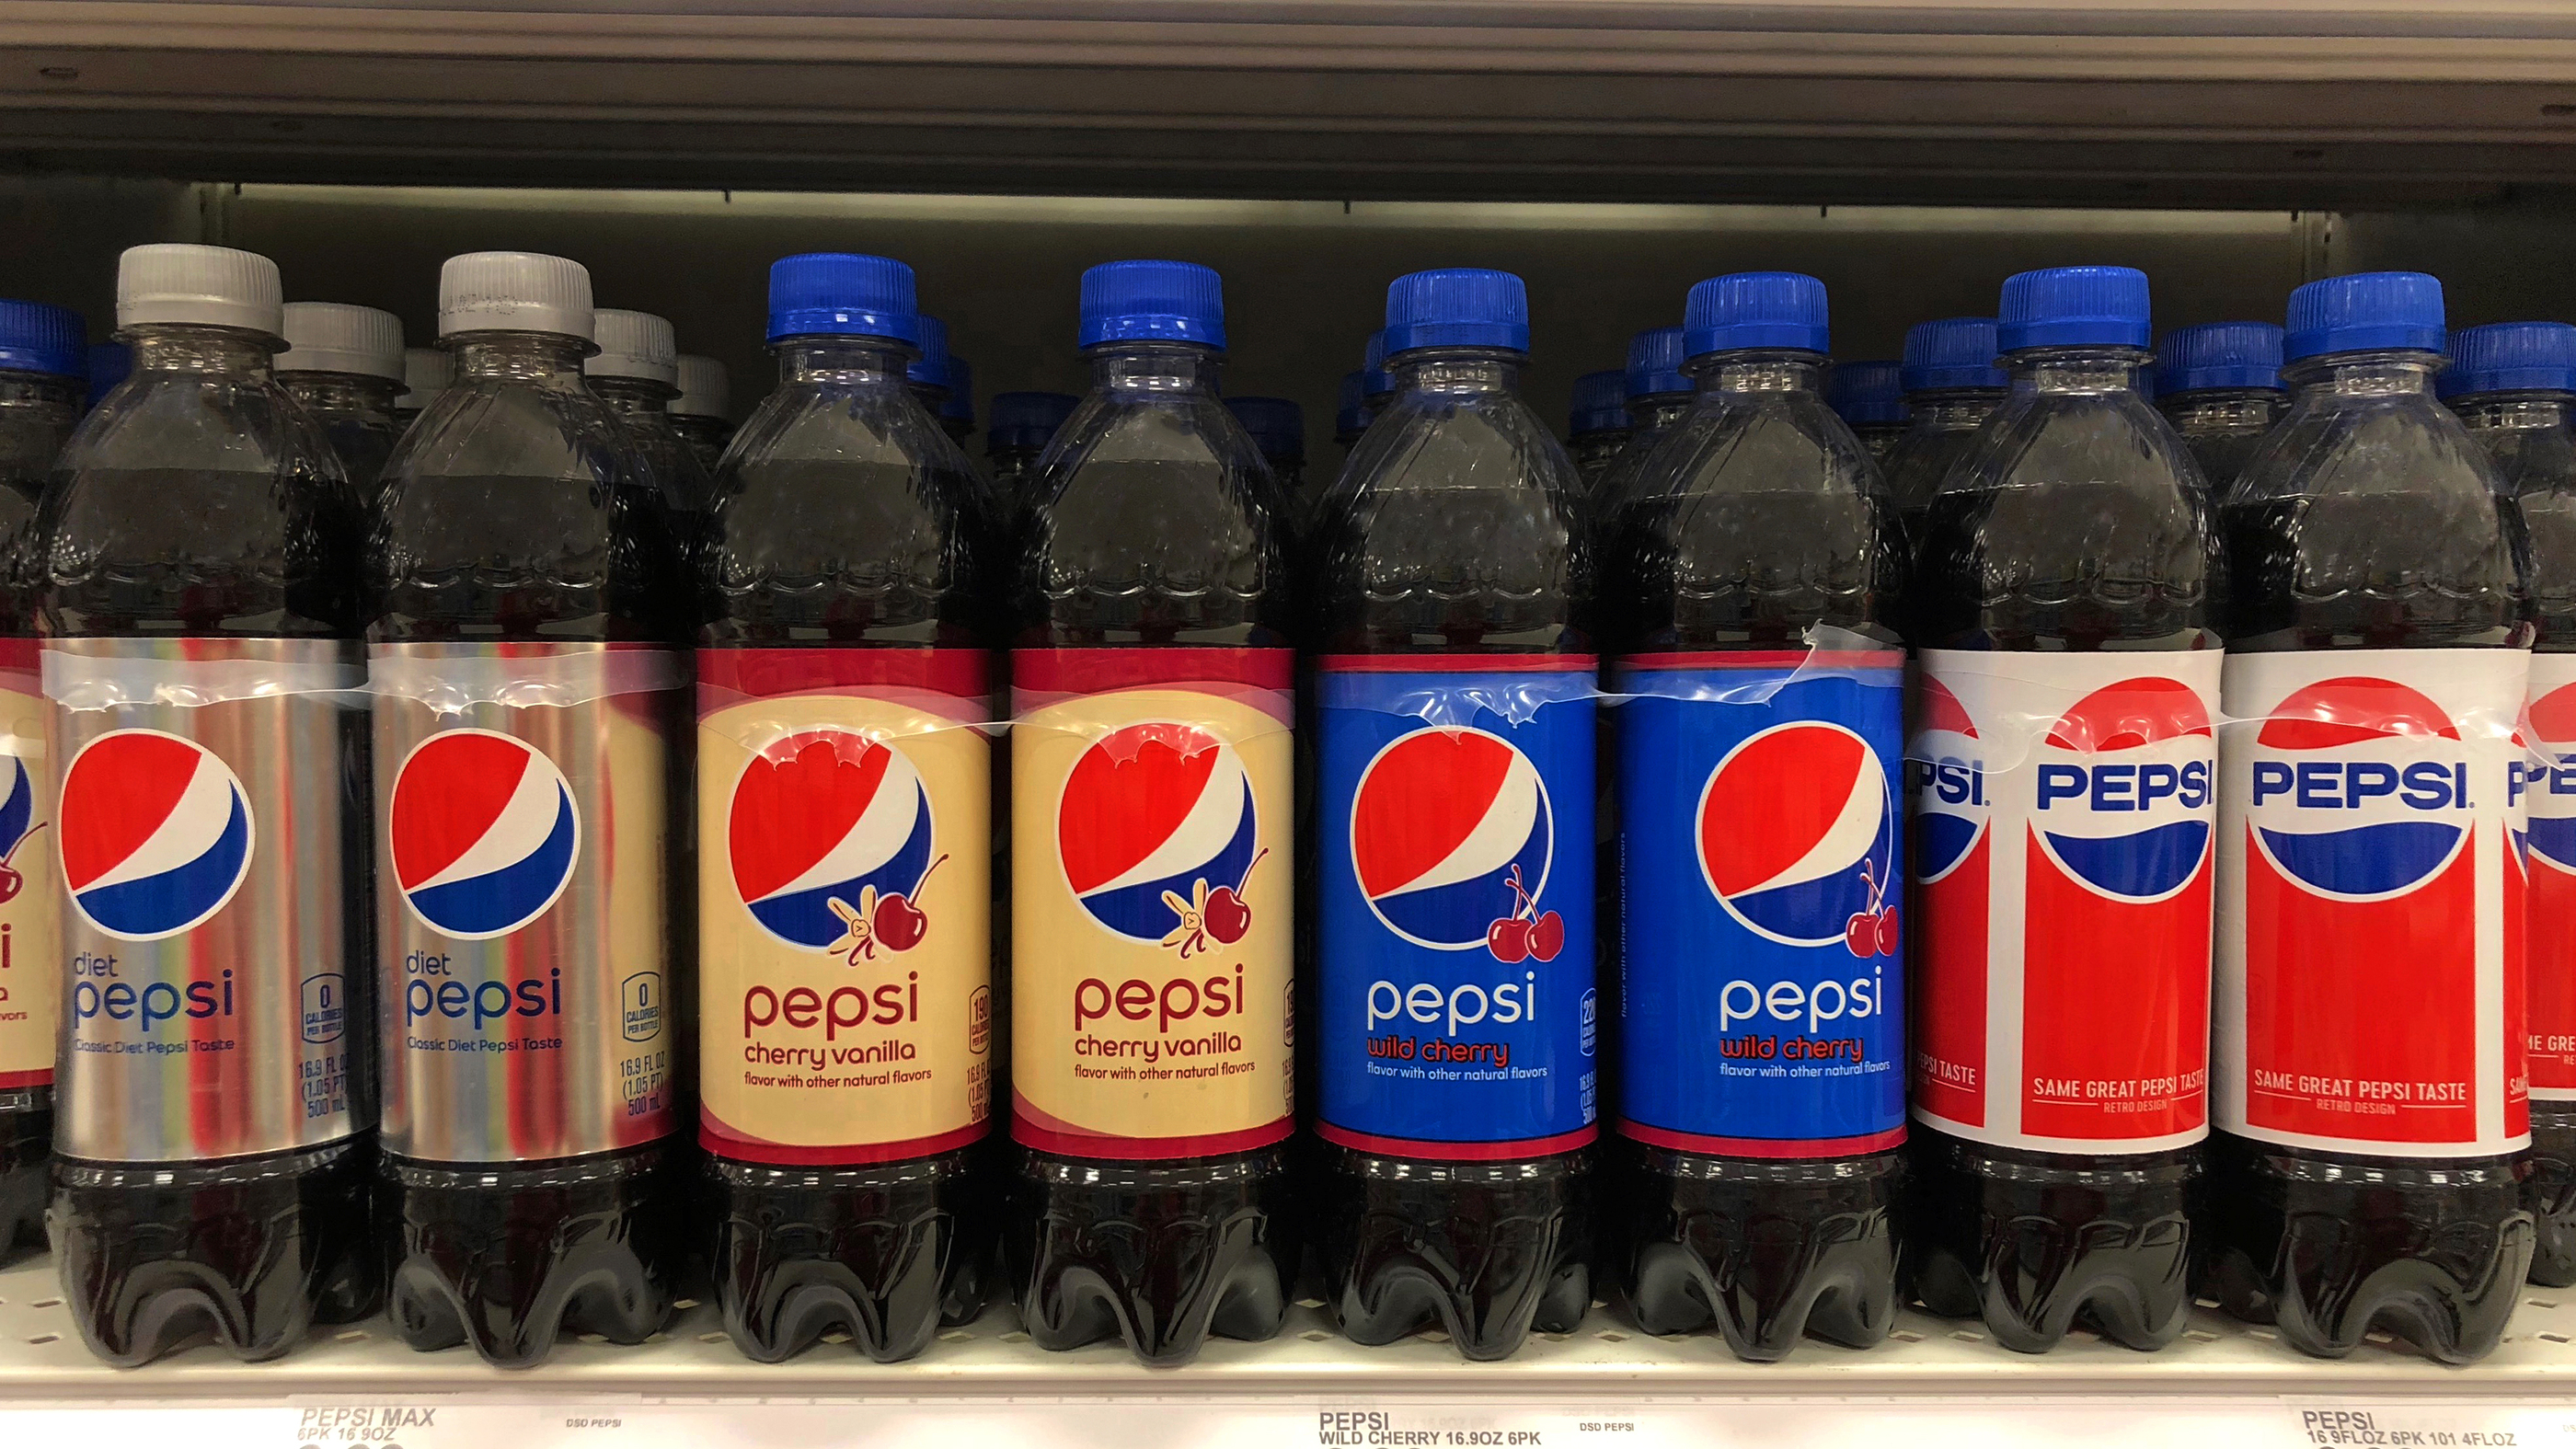 That Time Pepsi Accidentally Promised Hundreds of Thousands of